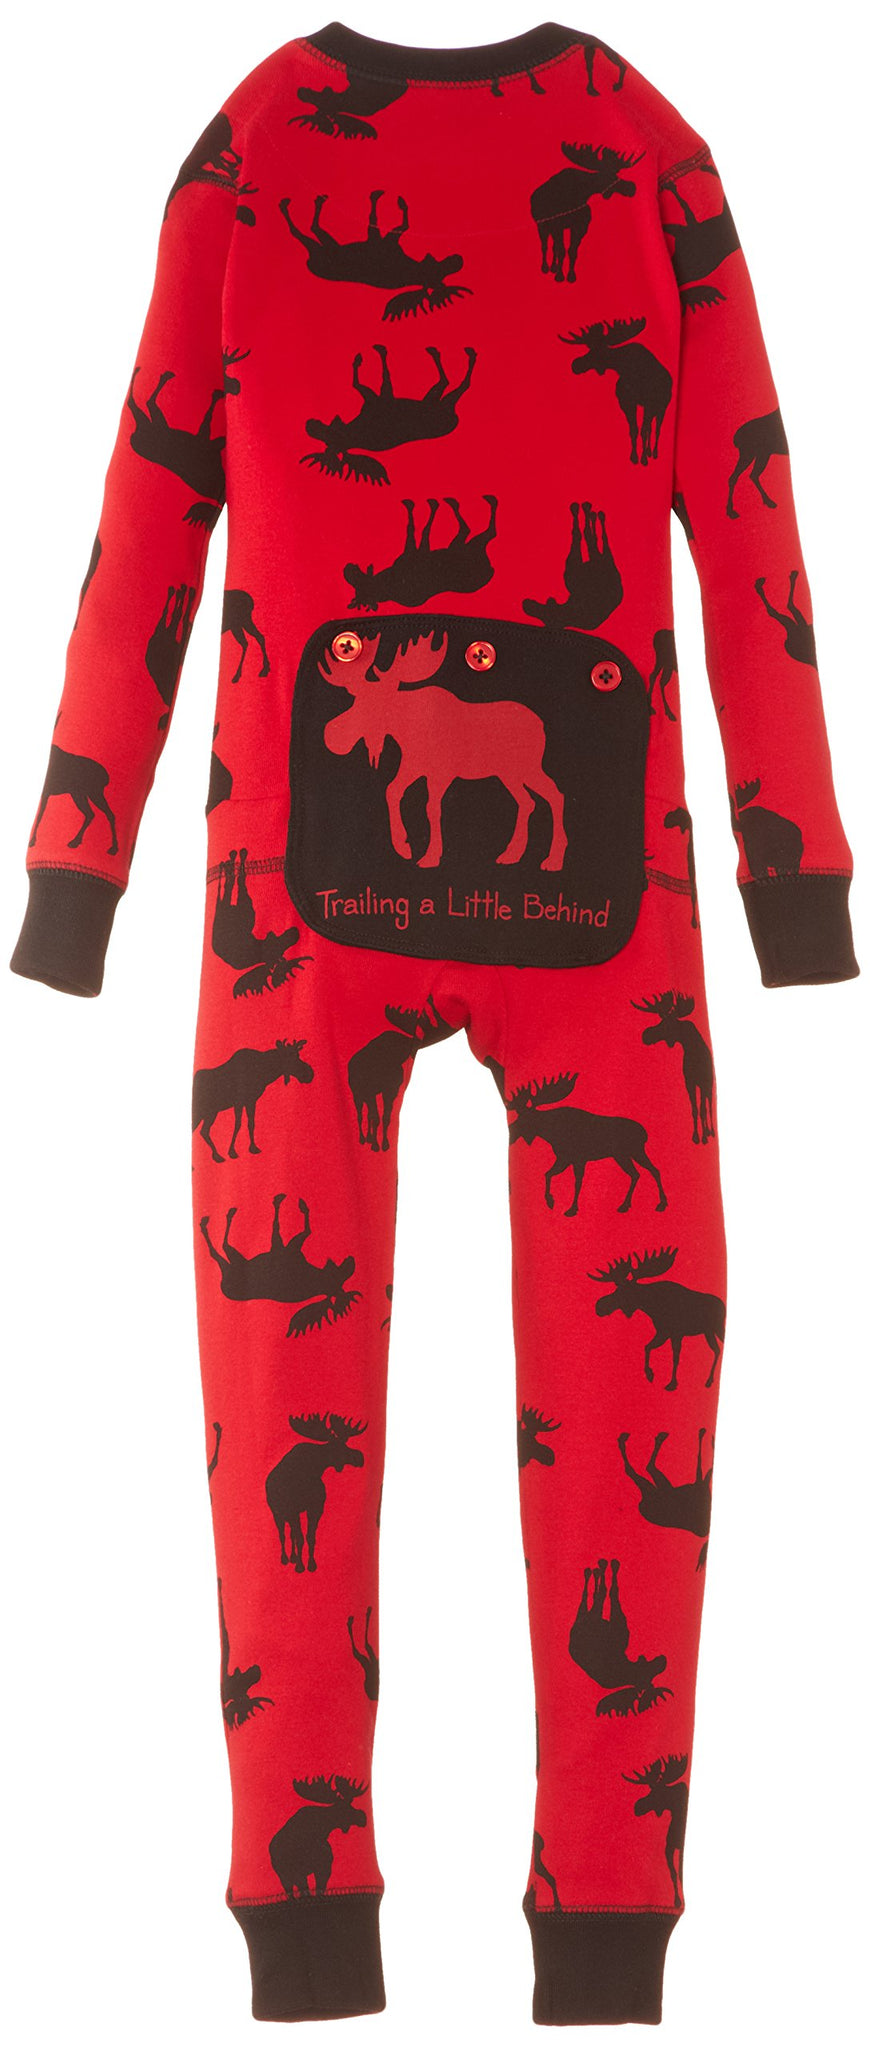 Little Blue House by Hatley Unisex Kid's Big Union Suit, Moose On Red, 10 Years